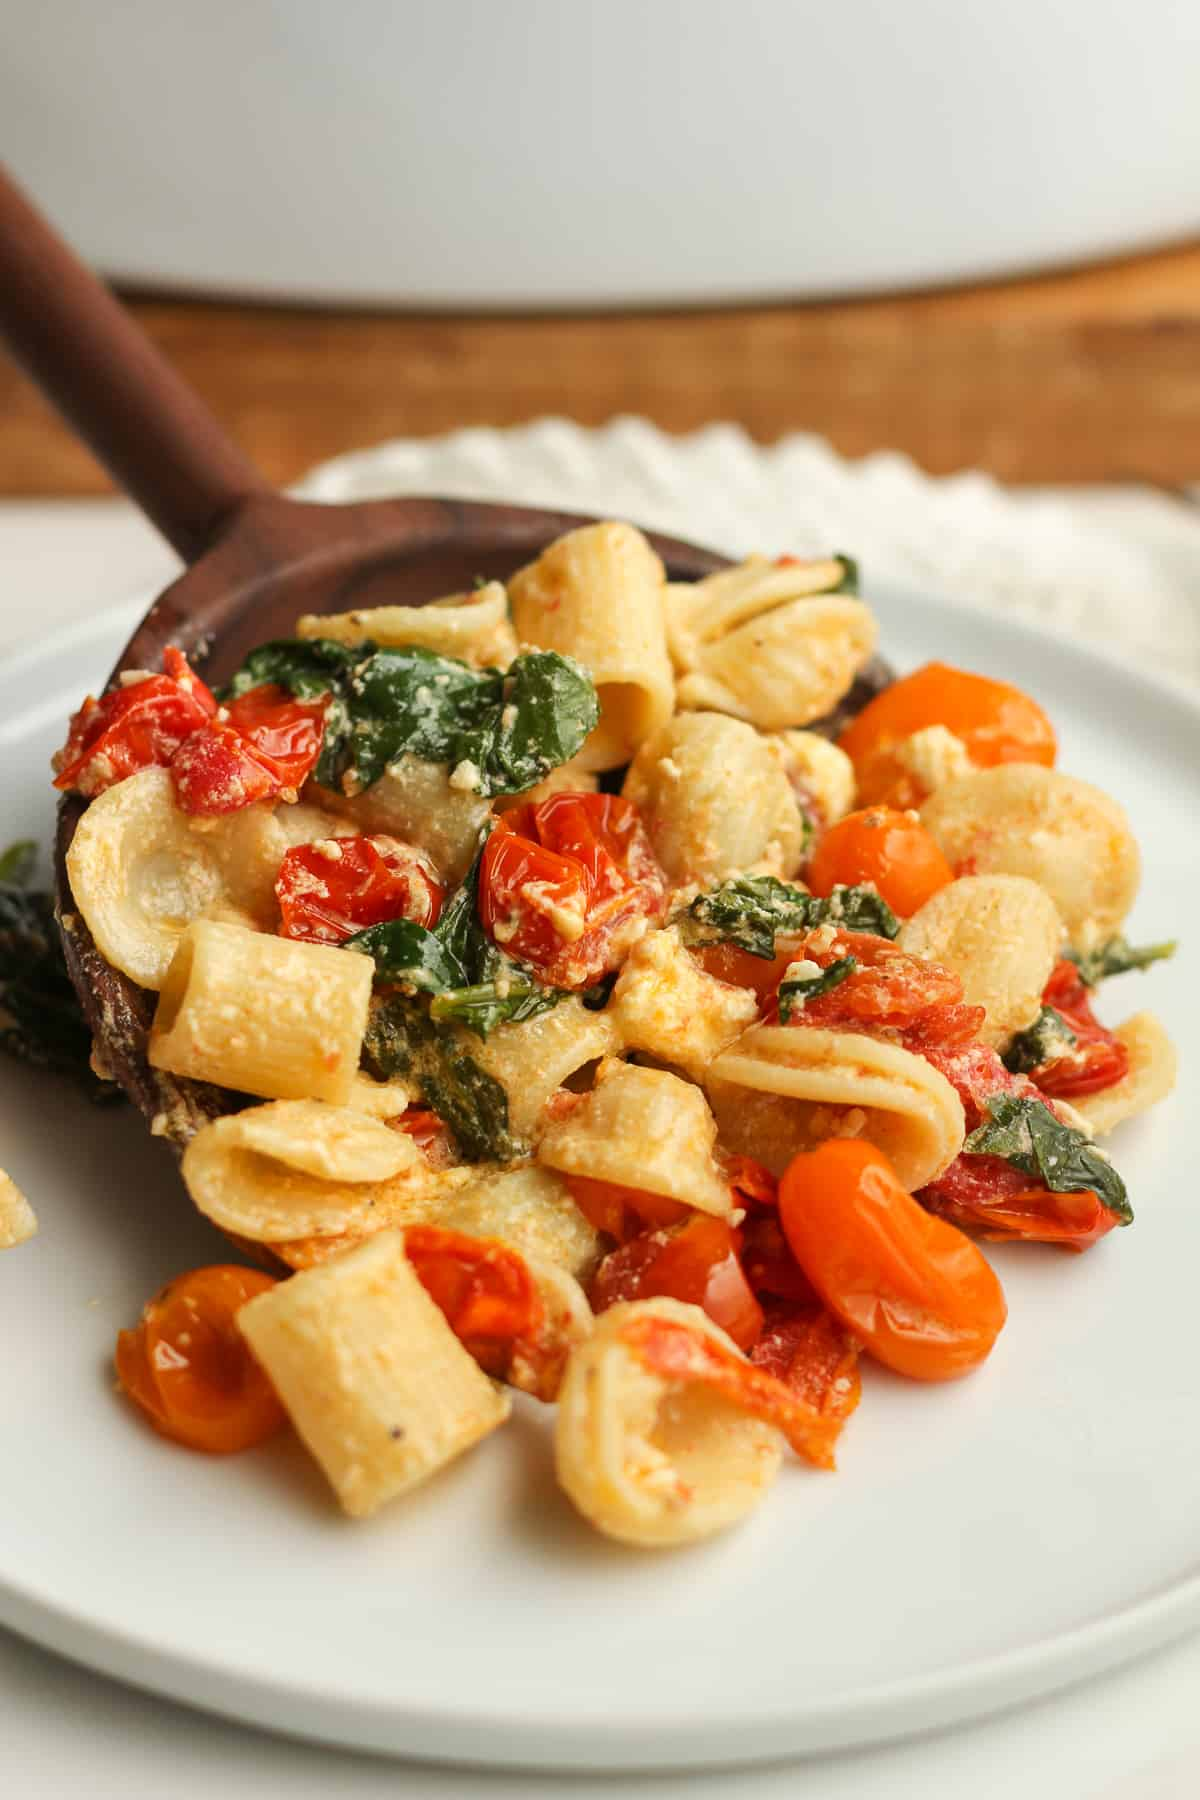 A spoonful of feta pasta on a plate.